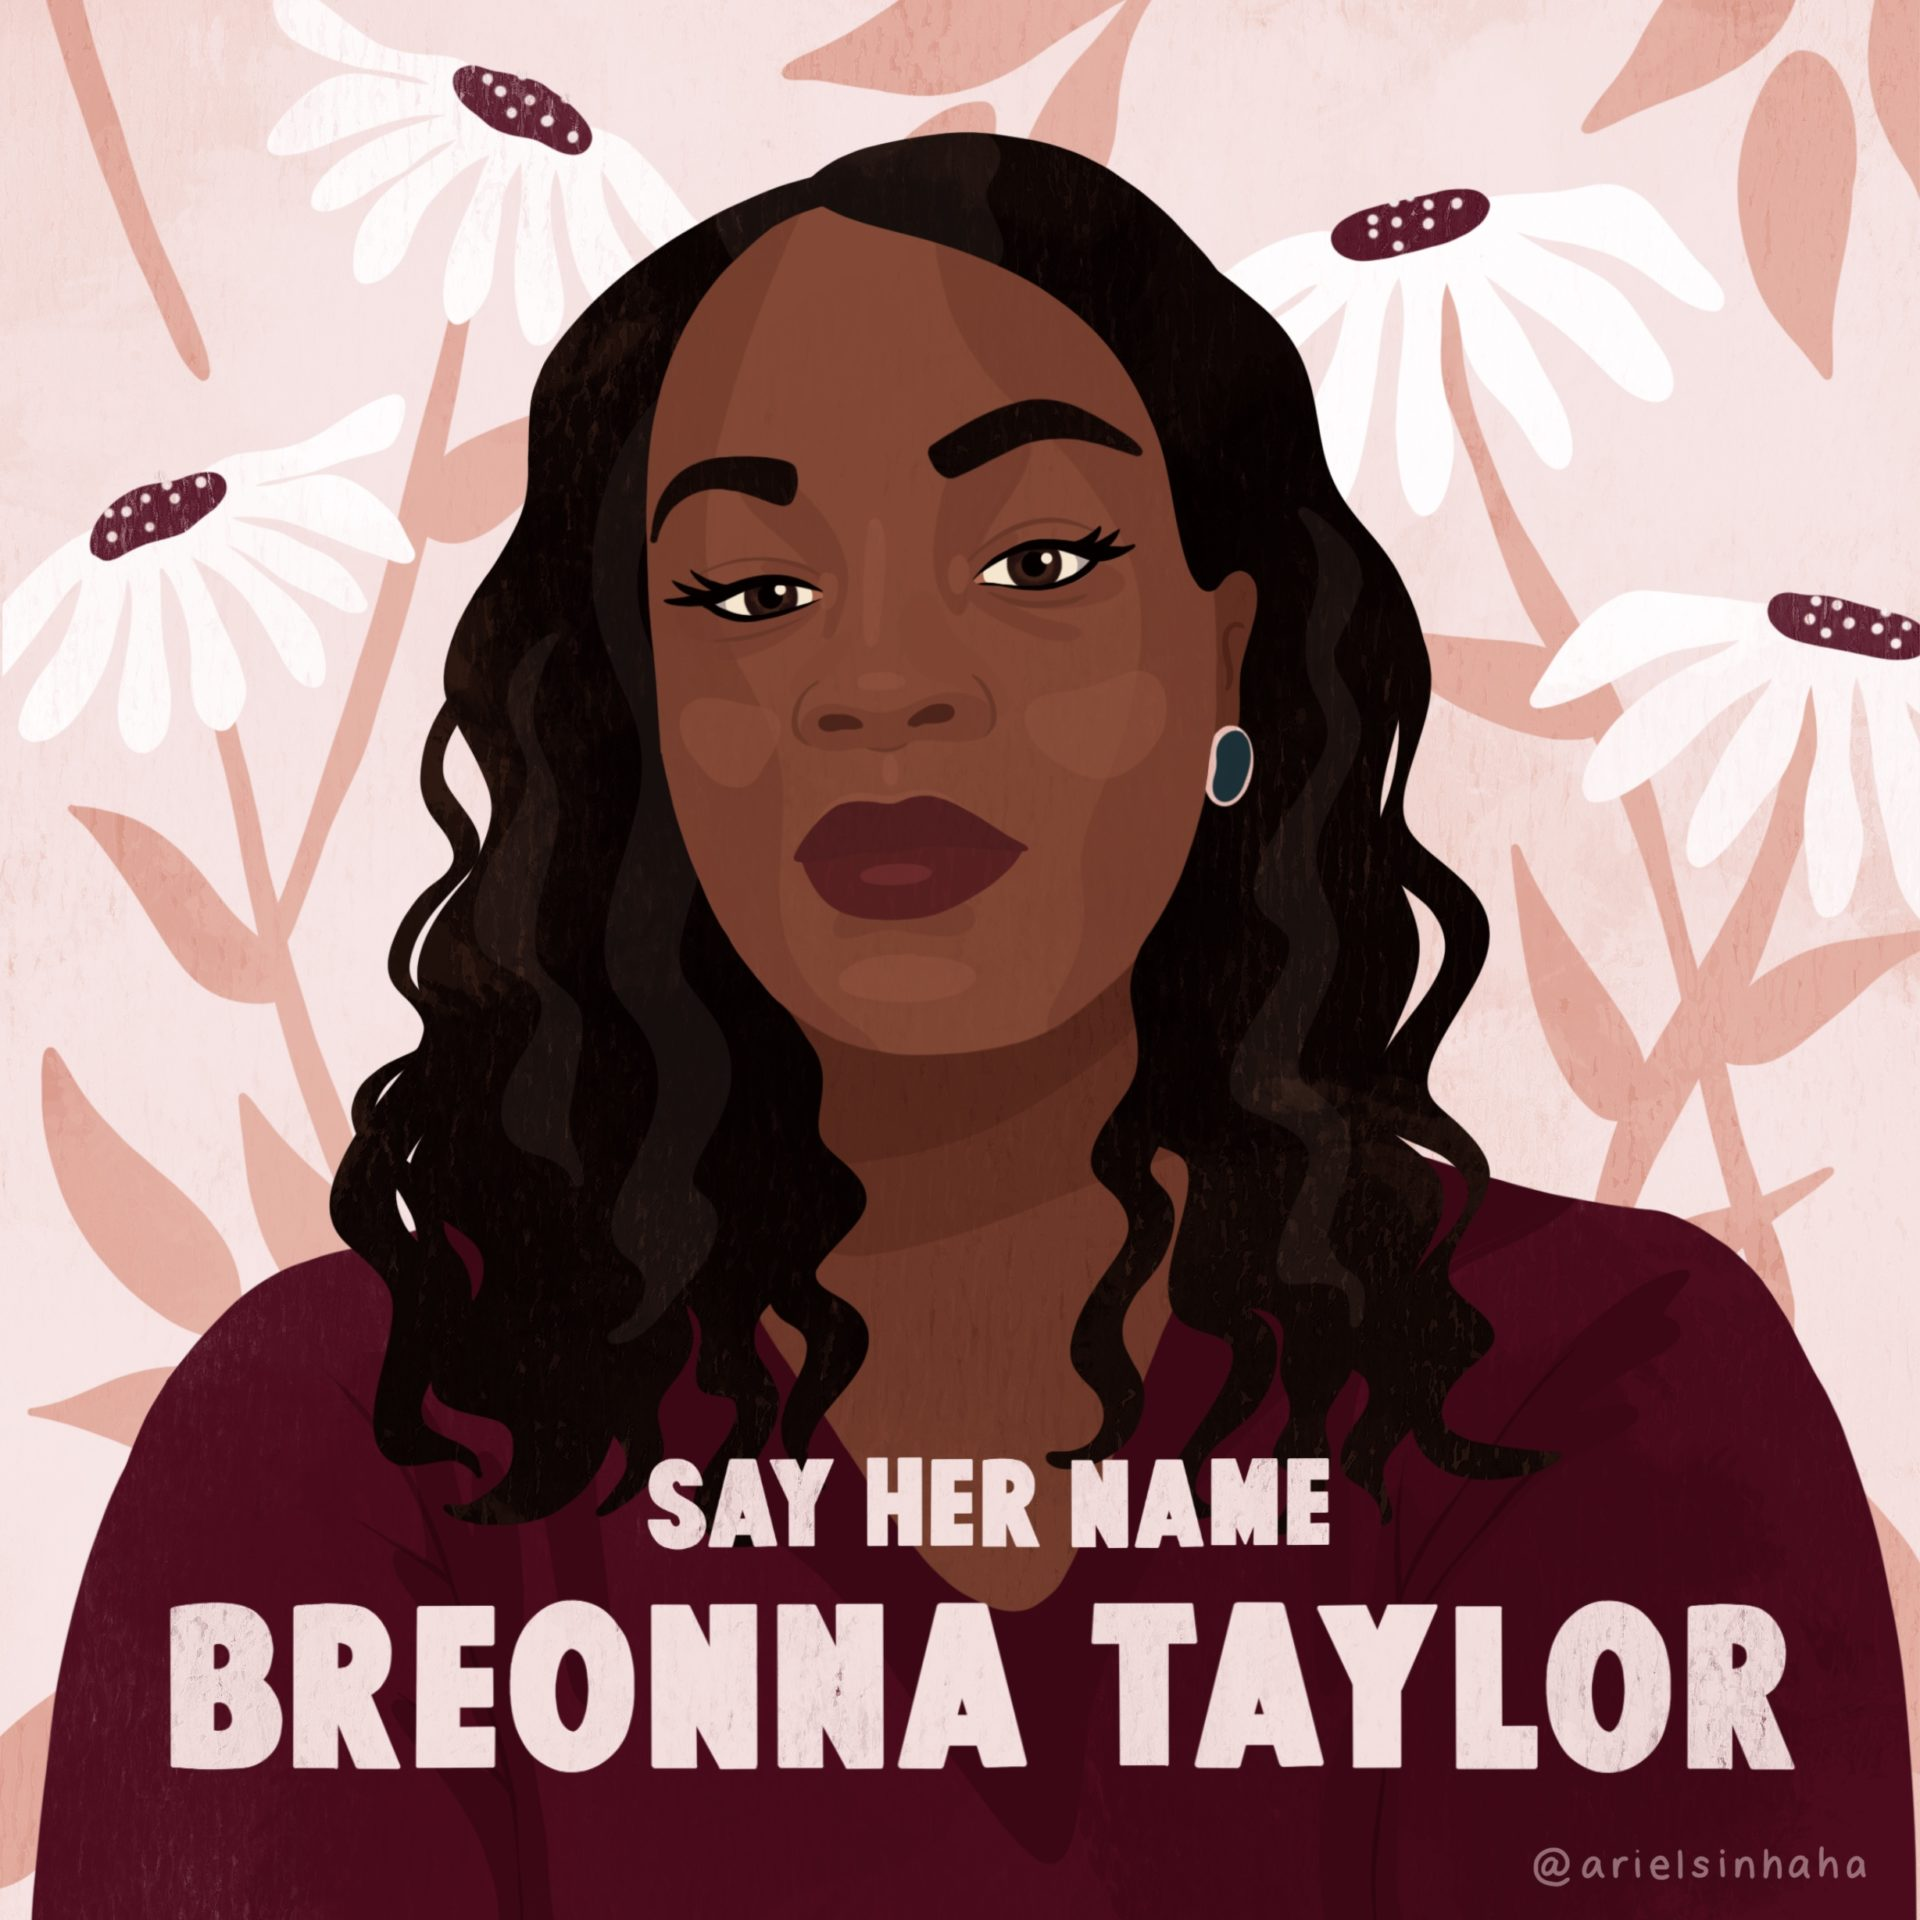 Artistic portrait of Breonna Taylor